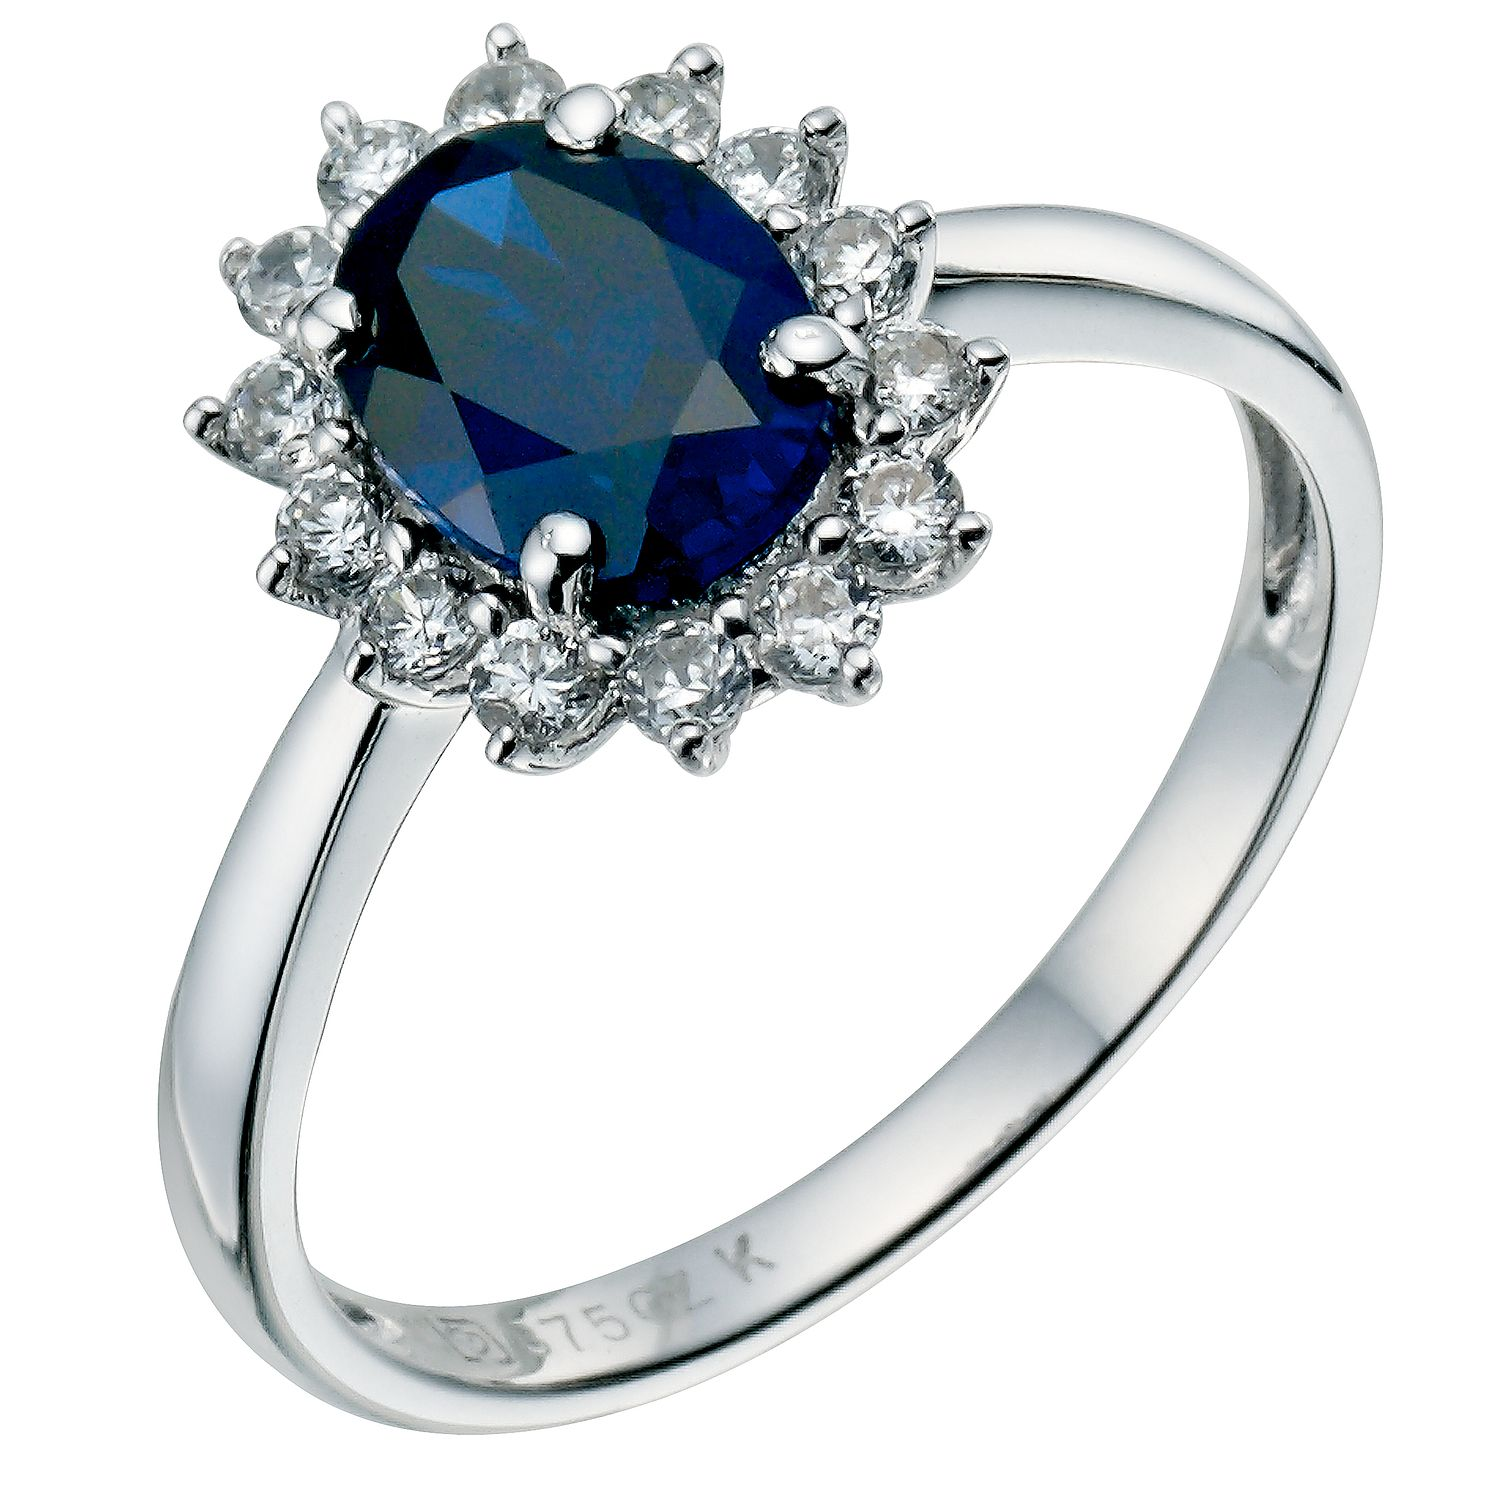 ring untreated views i dark cut rings ct blue more diamond sapphire a platinum square engagement